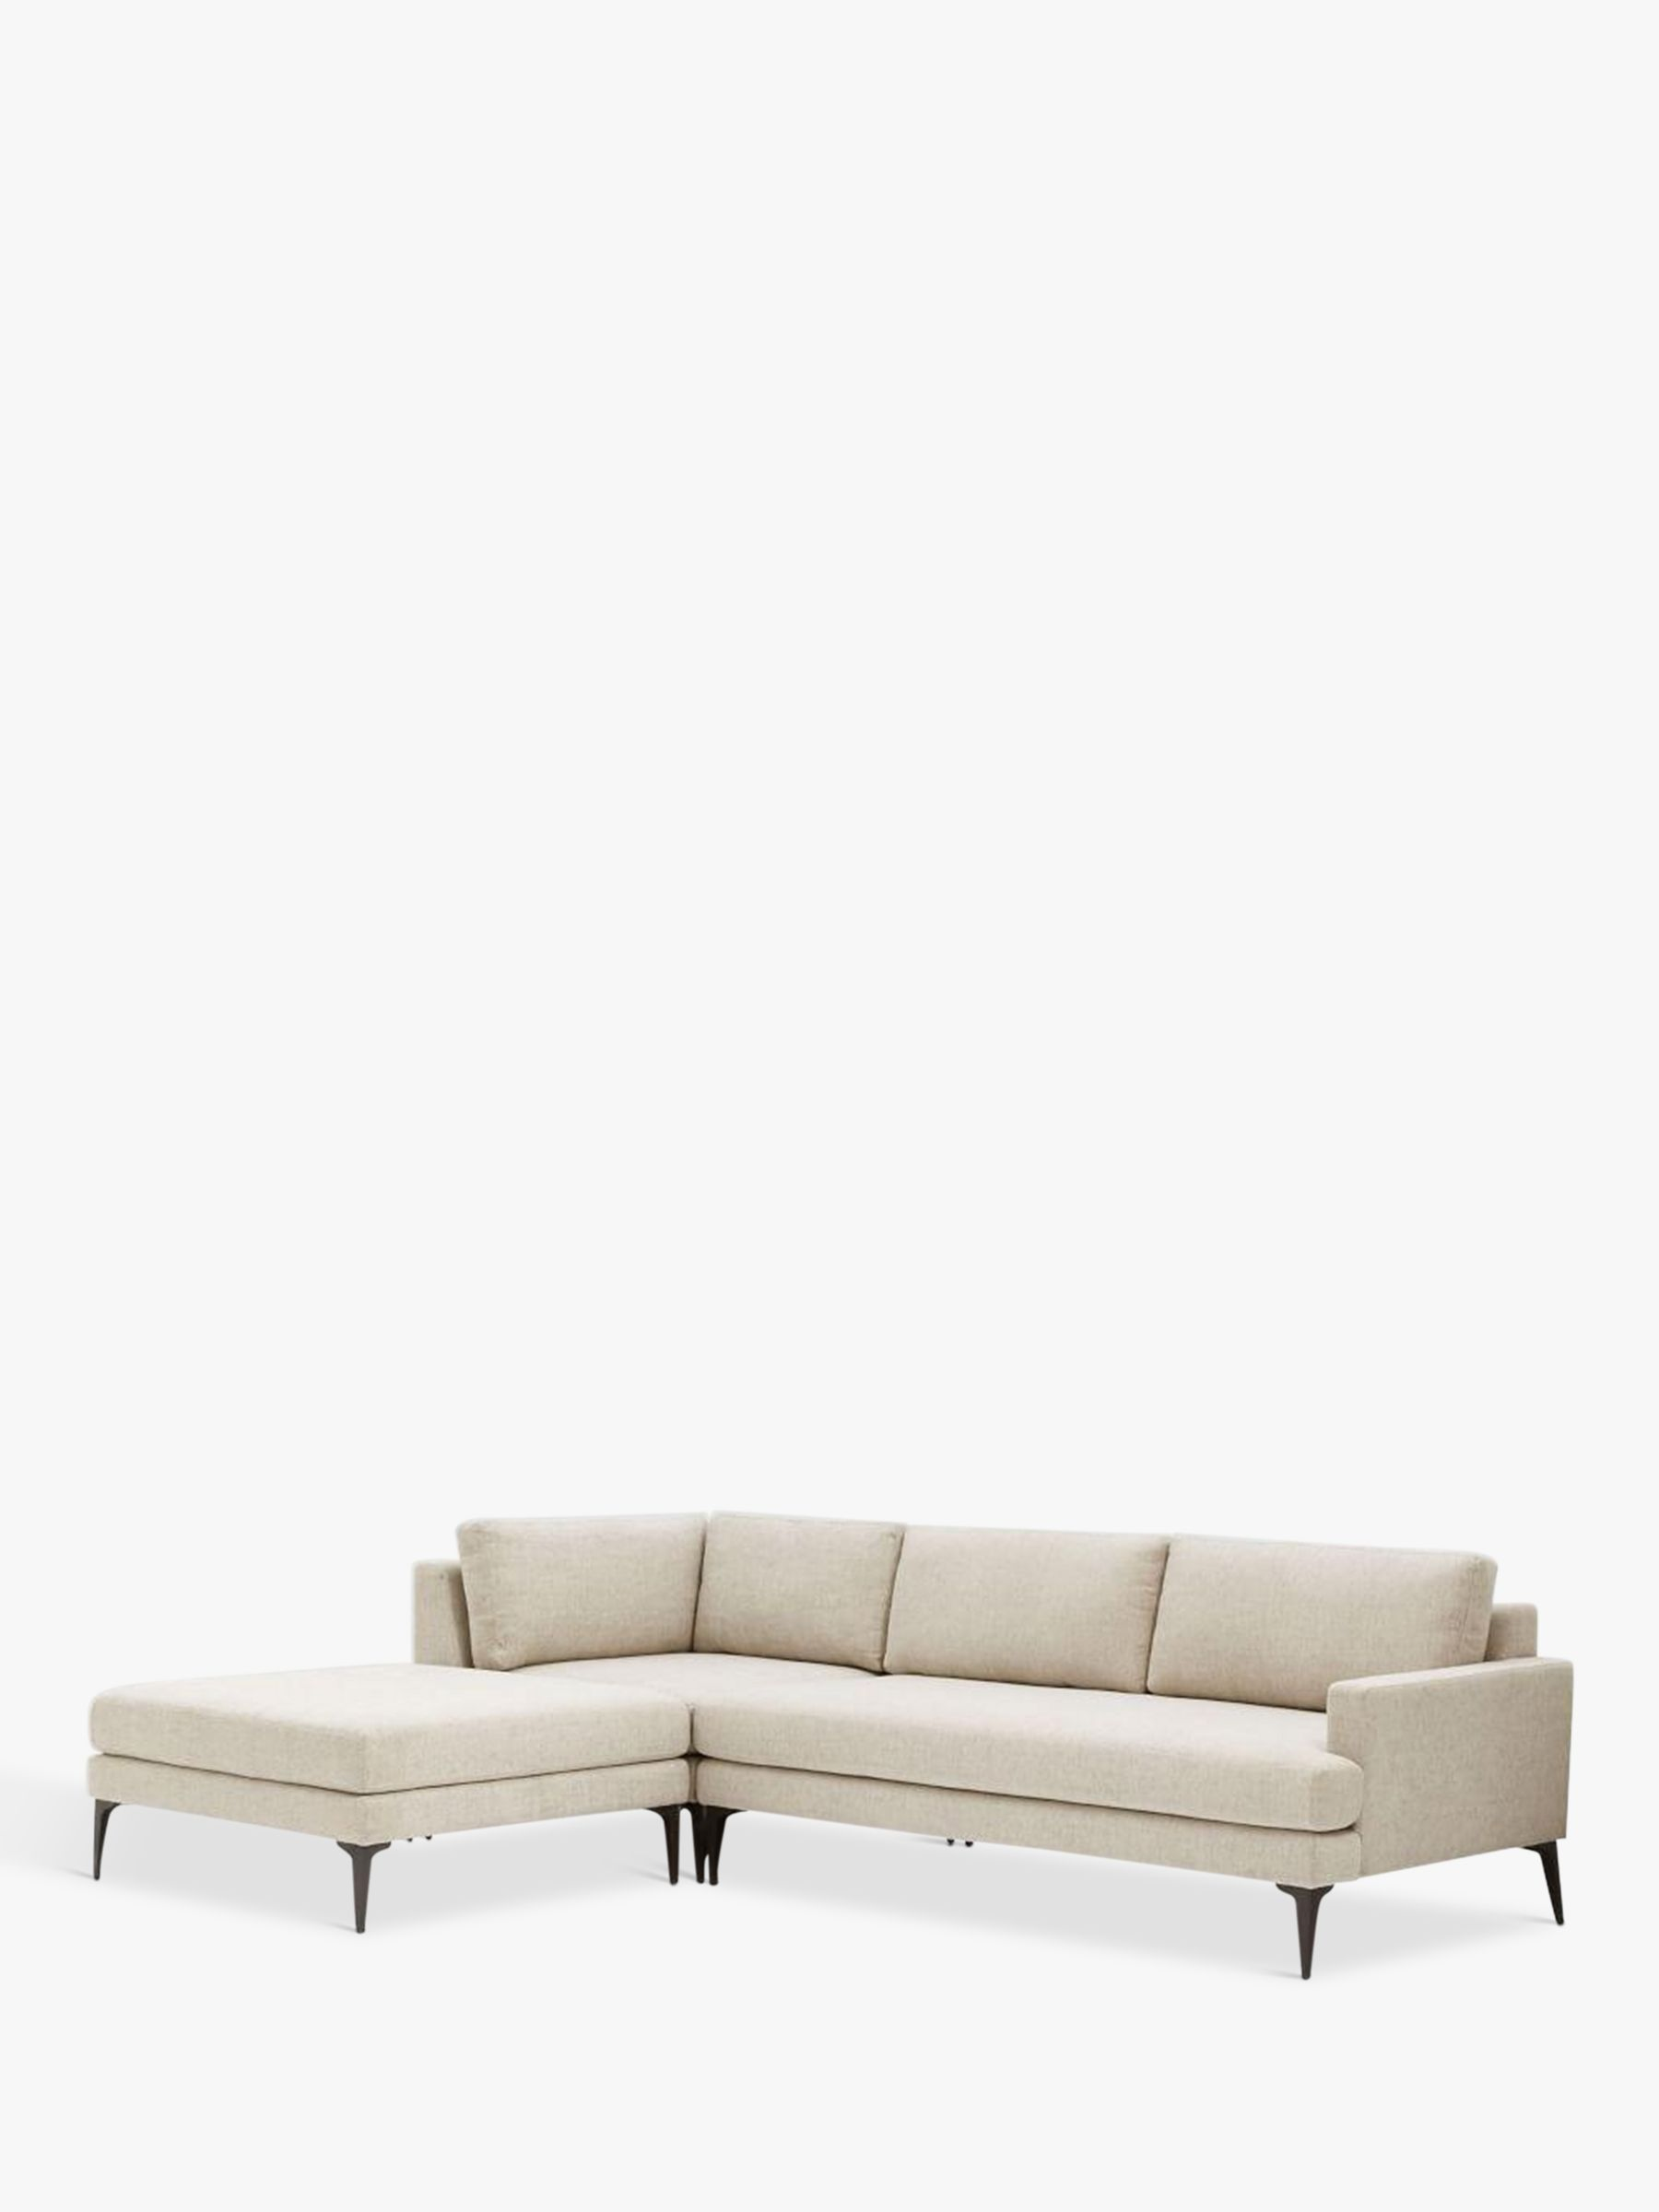 Buy west elm Andes Large 3 Seater LHF Sectional Sofa TwillStone